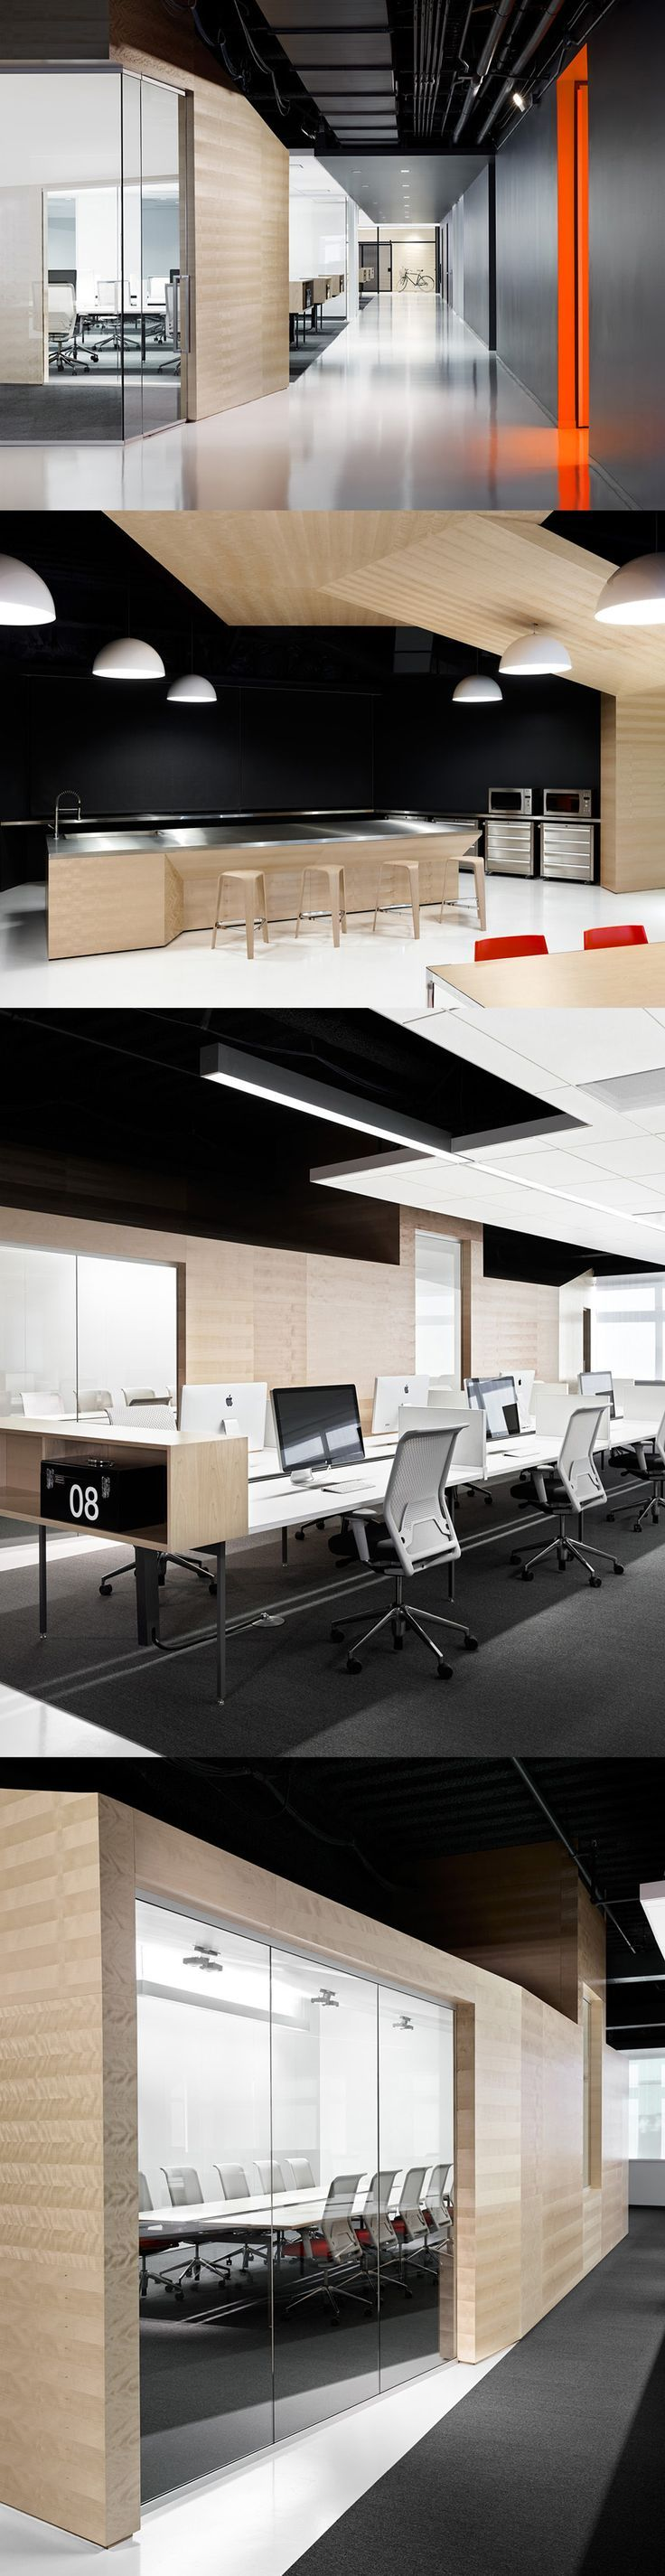 Tewes design nyc executive office seattle interior design - Techshed_home Improvement Marketplace Company_foster City_california_designed By Garcia Tamjidi Architecture Design Dedicated To Deliver Superior Interior